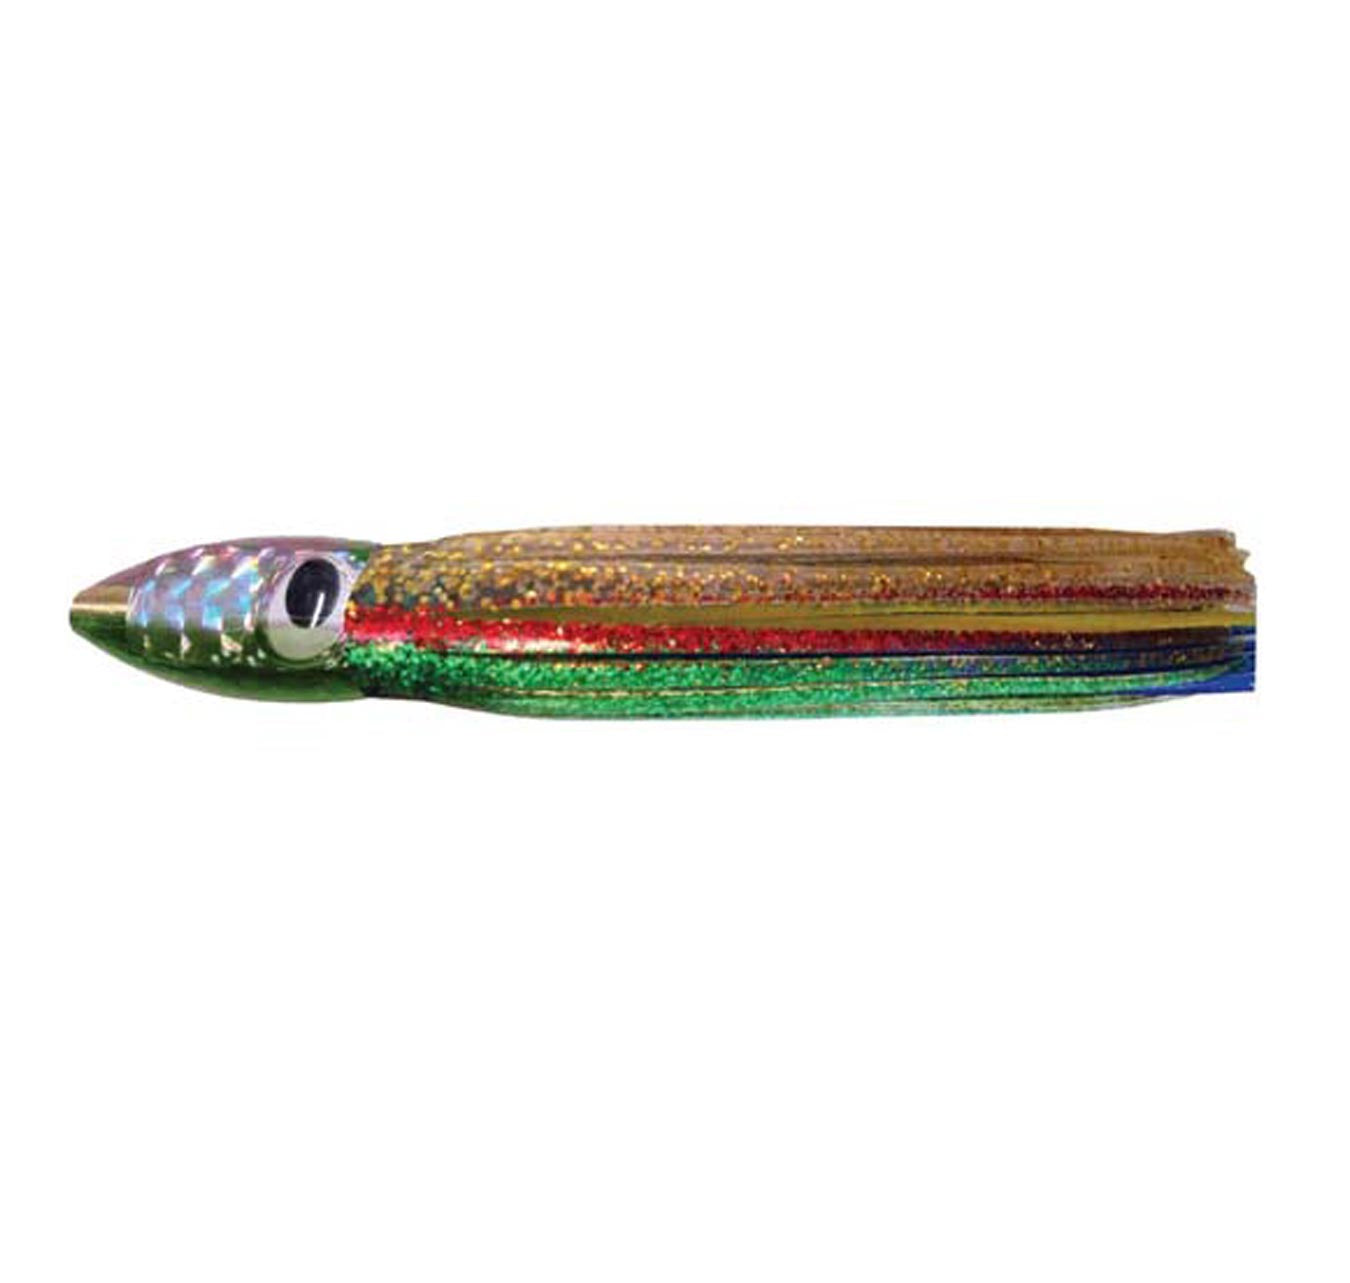 "Entice Scud 10"" Skirted Lures"